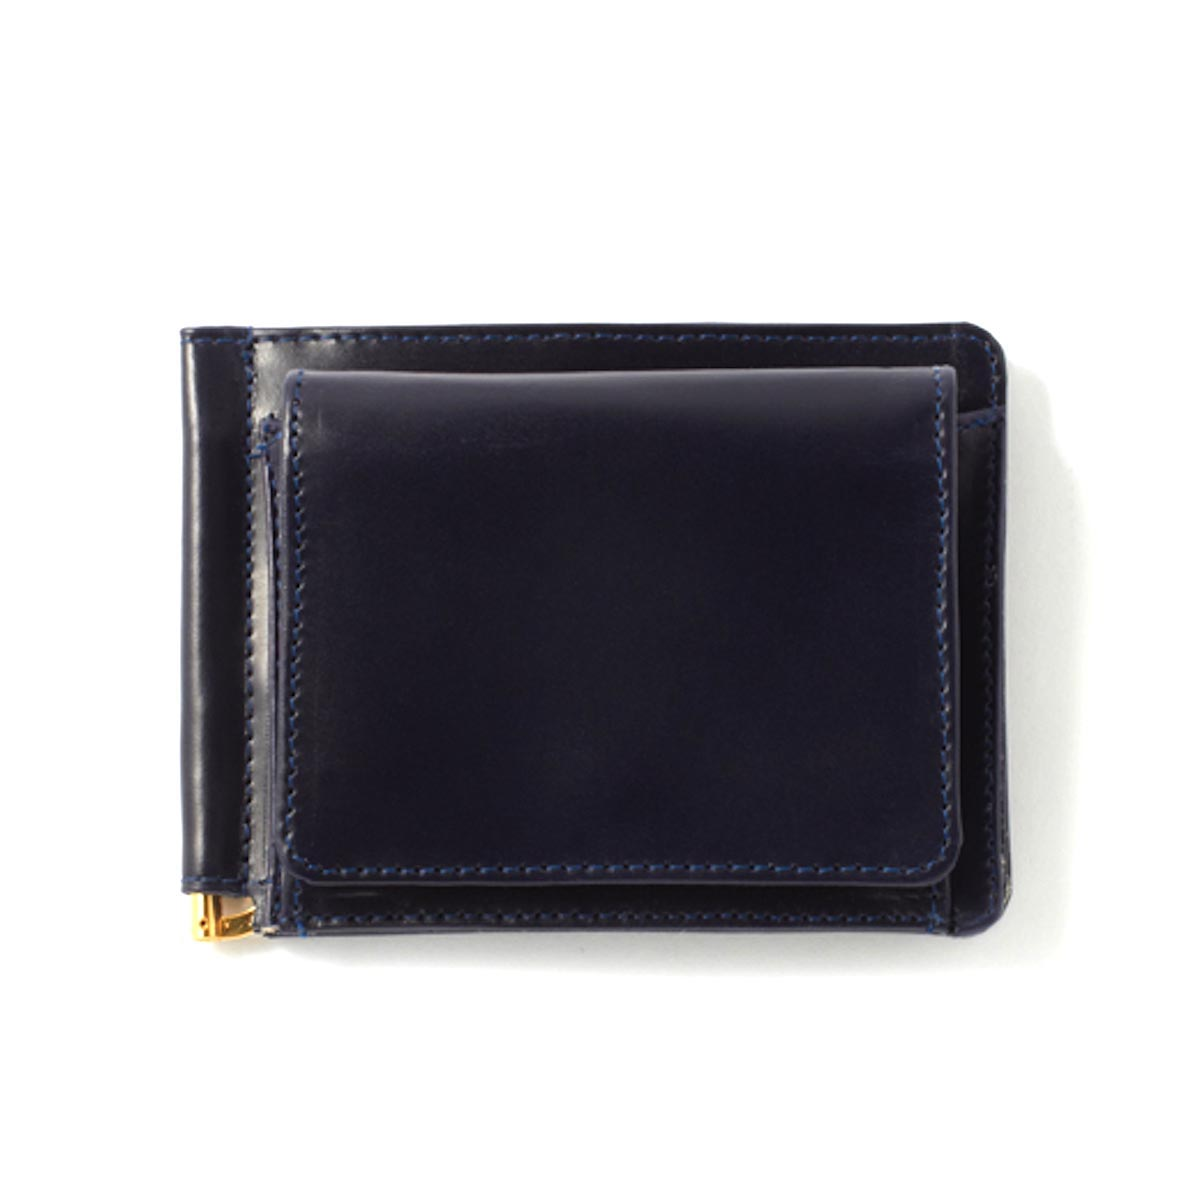 GLENROYAL / MONEY CLIP WITH COIN POCKET -DARK BLUE